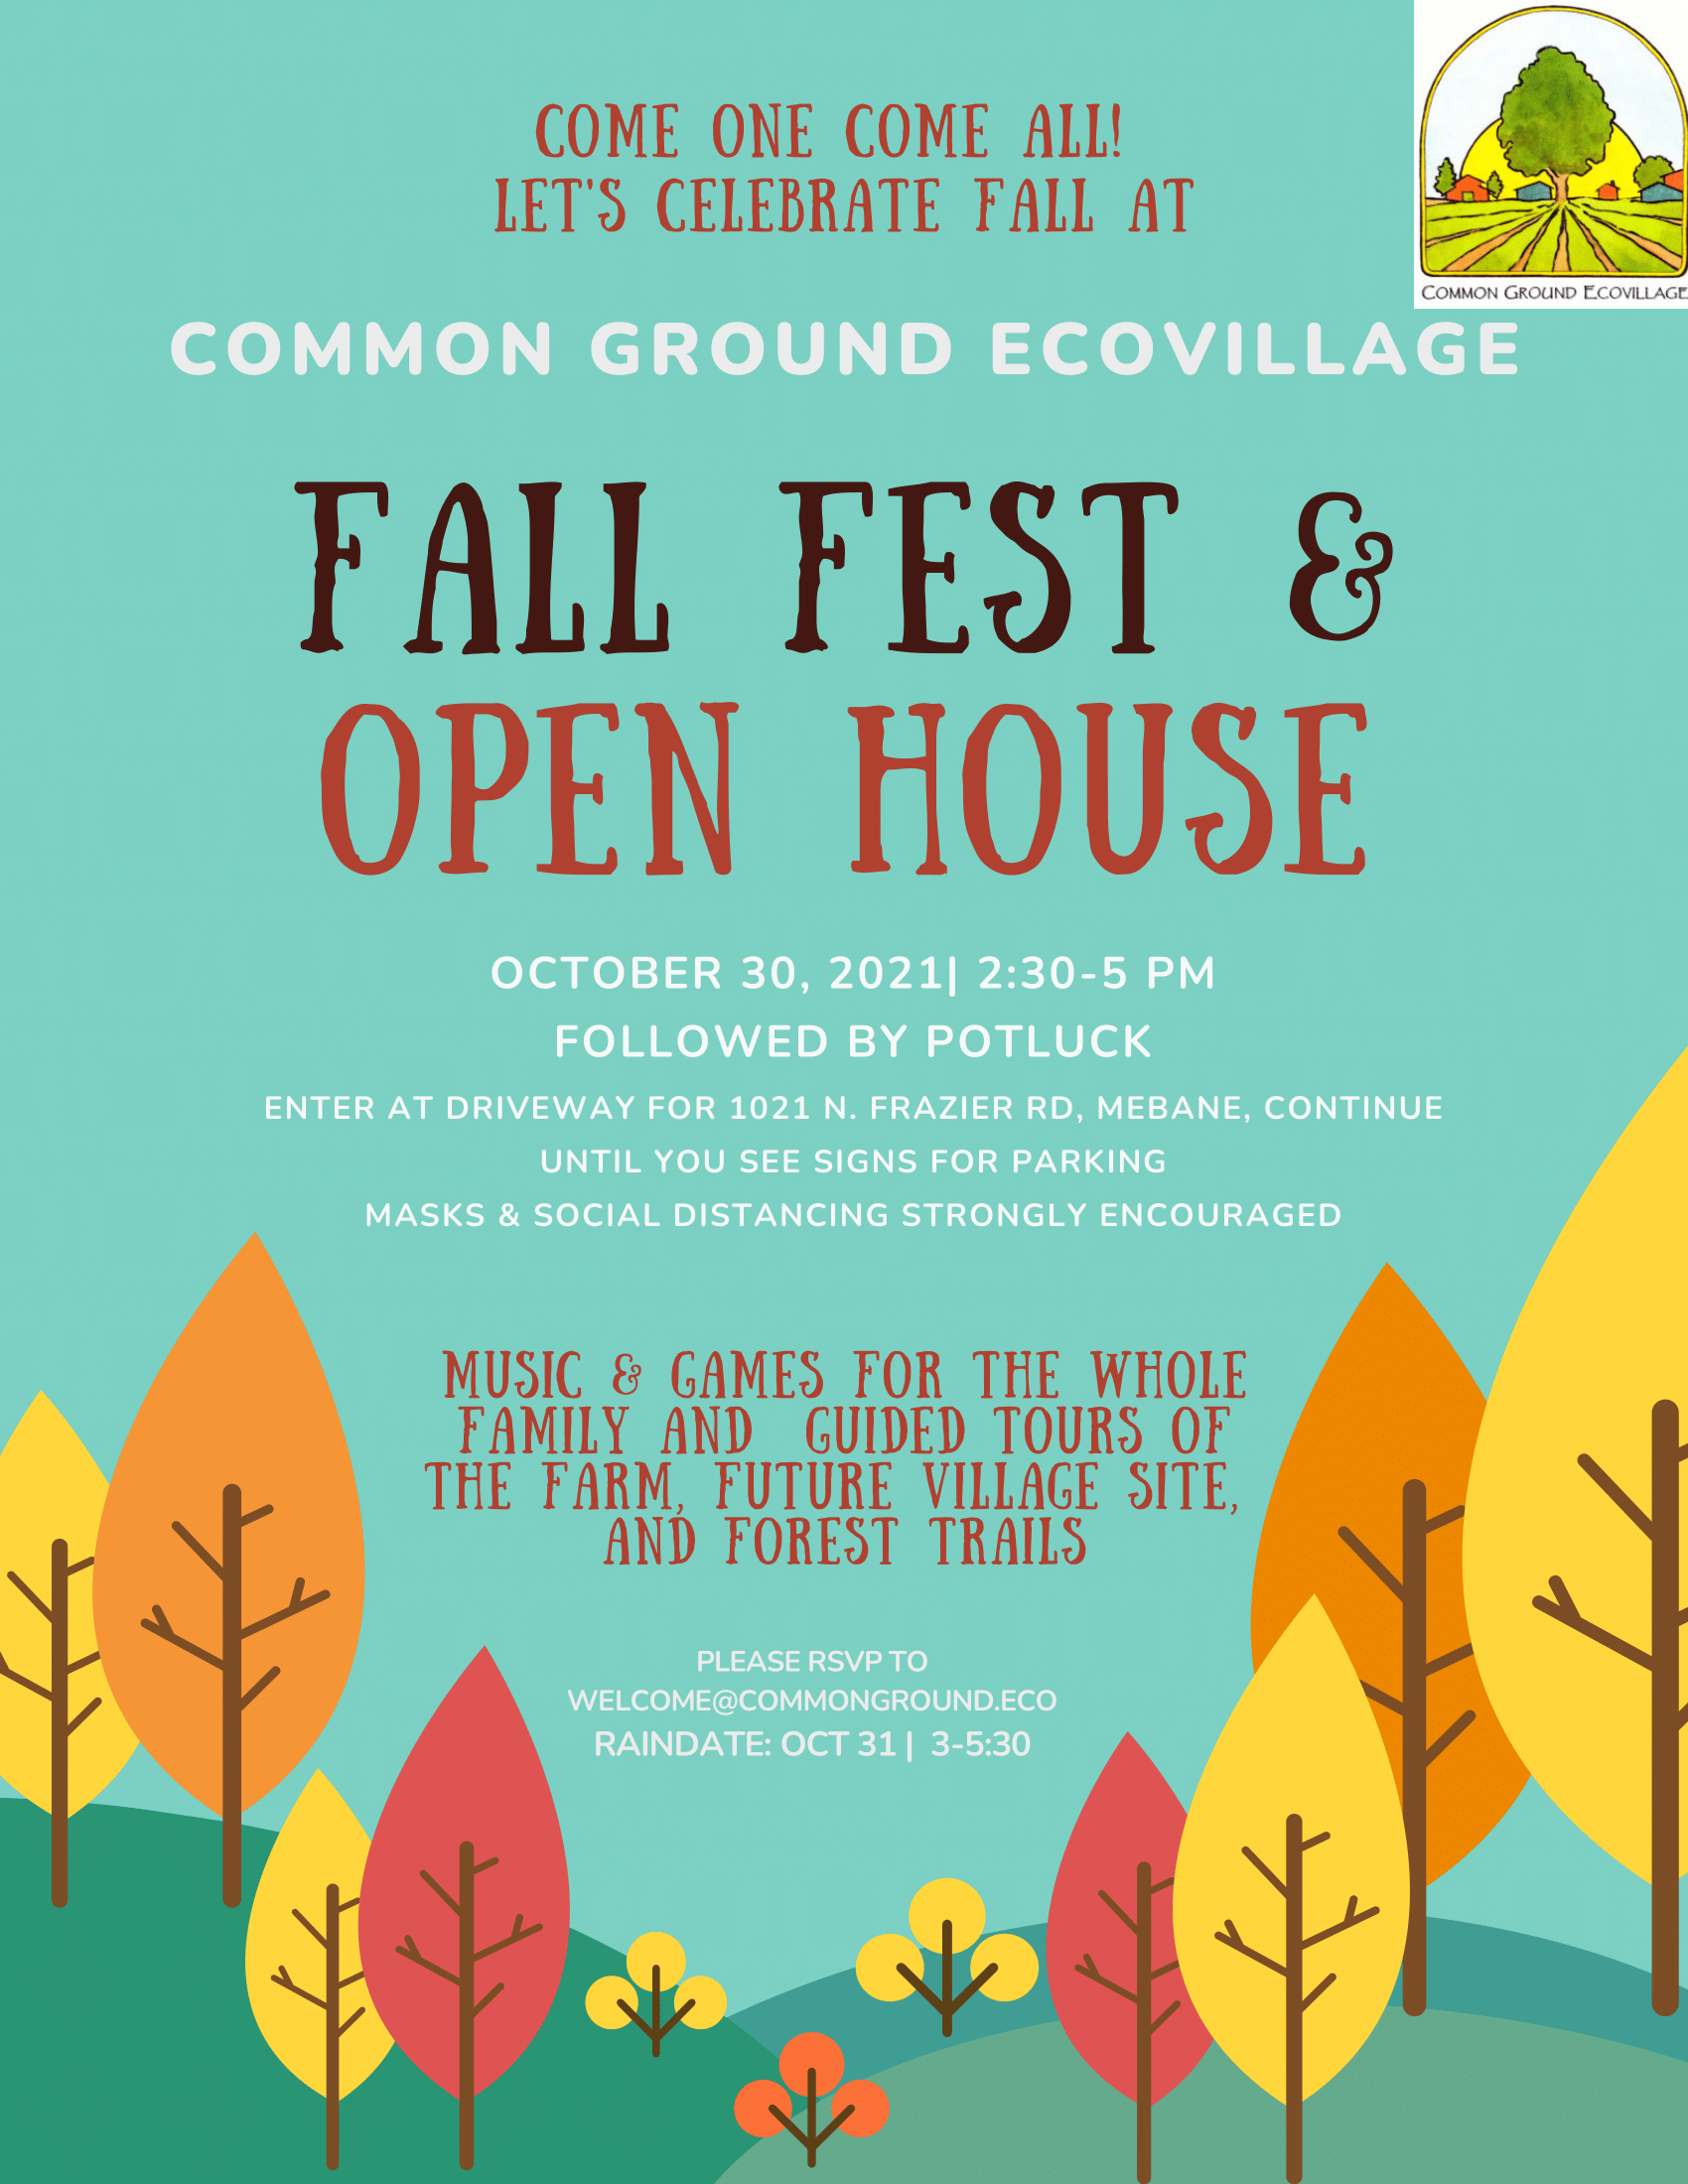 Fall Fest & Open House - October 30, 2021 | 2:30pm - 5:00pm